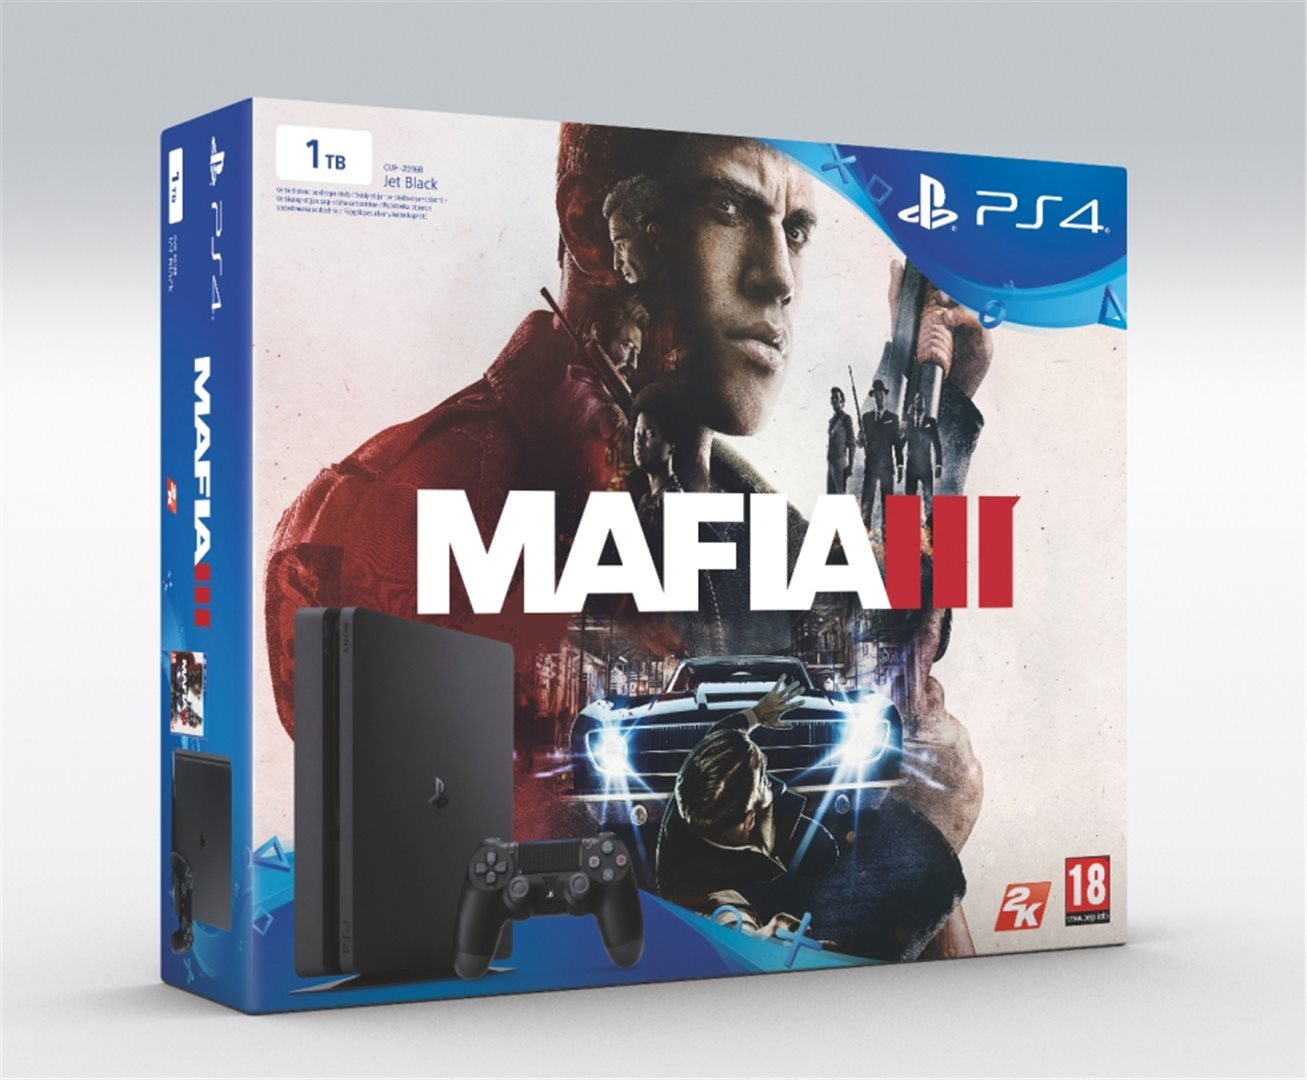 PS4 - Playstation 4 1TB Slim + Mafia 3